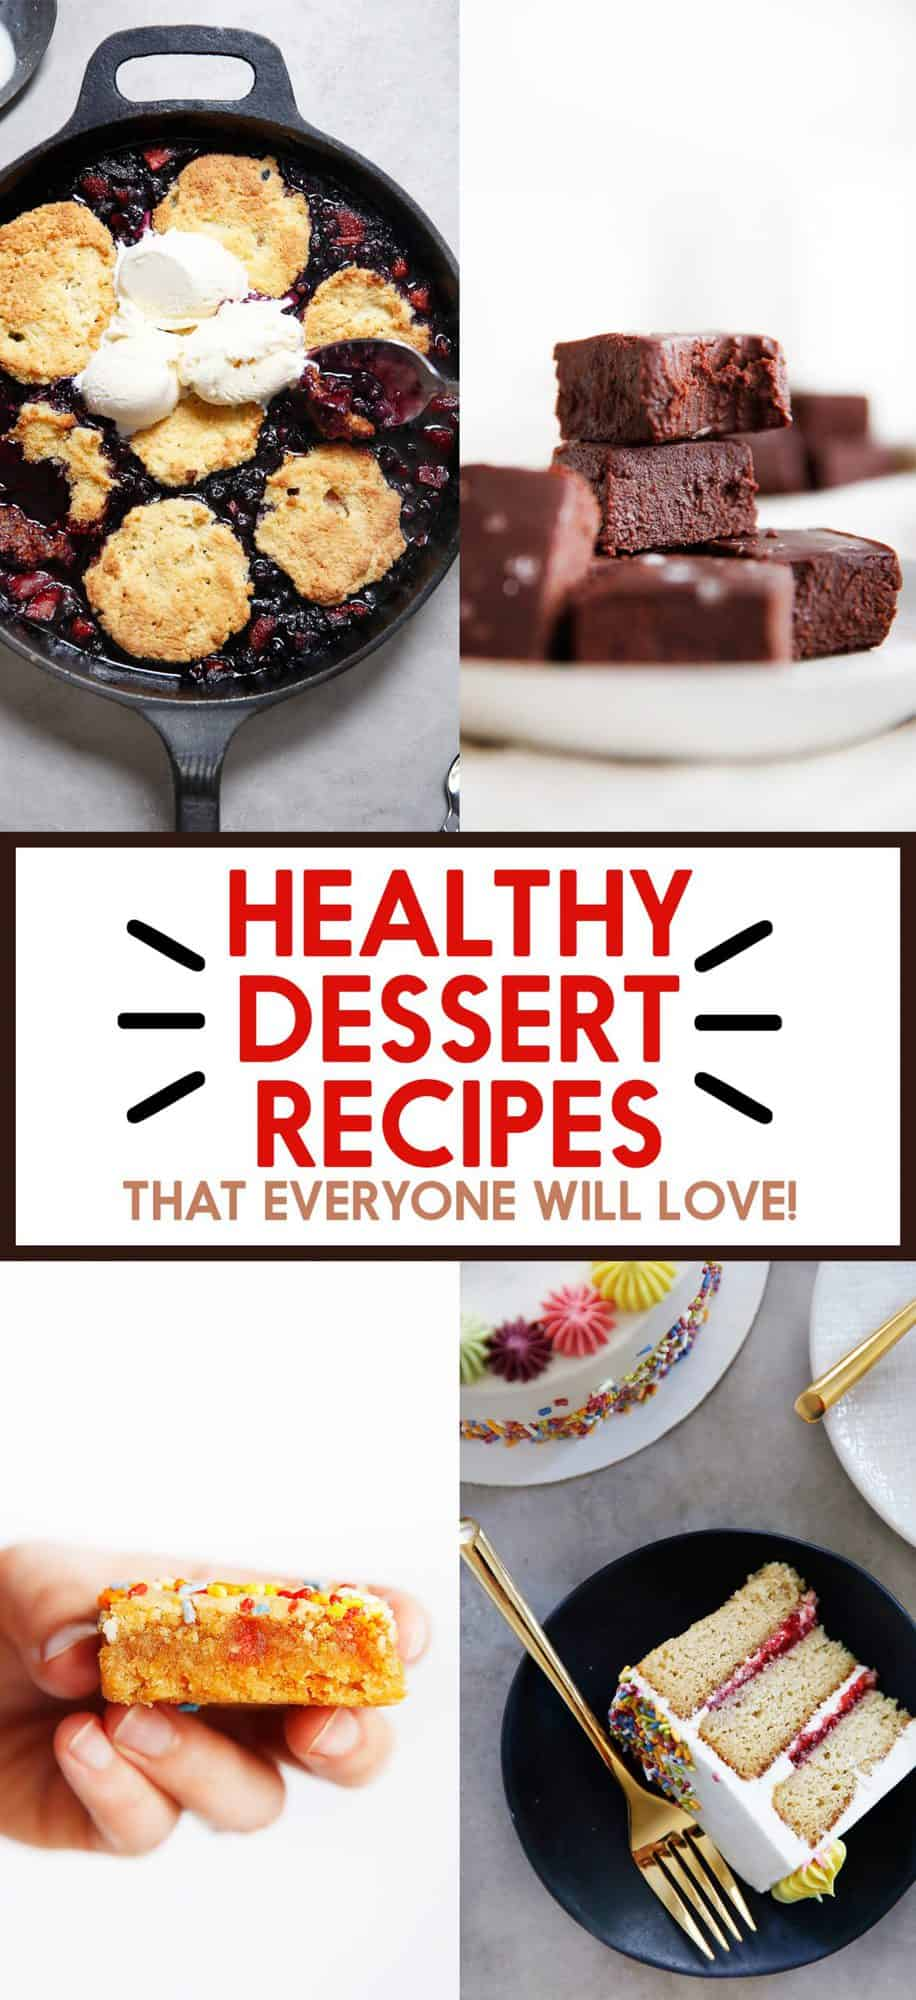 Healthy Dessert Recipes